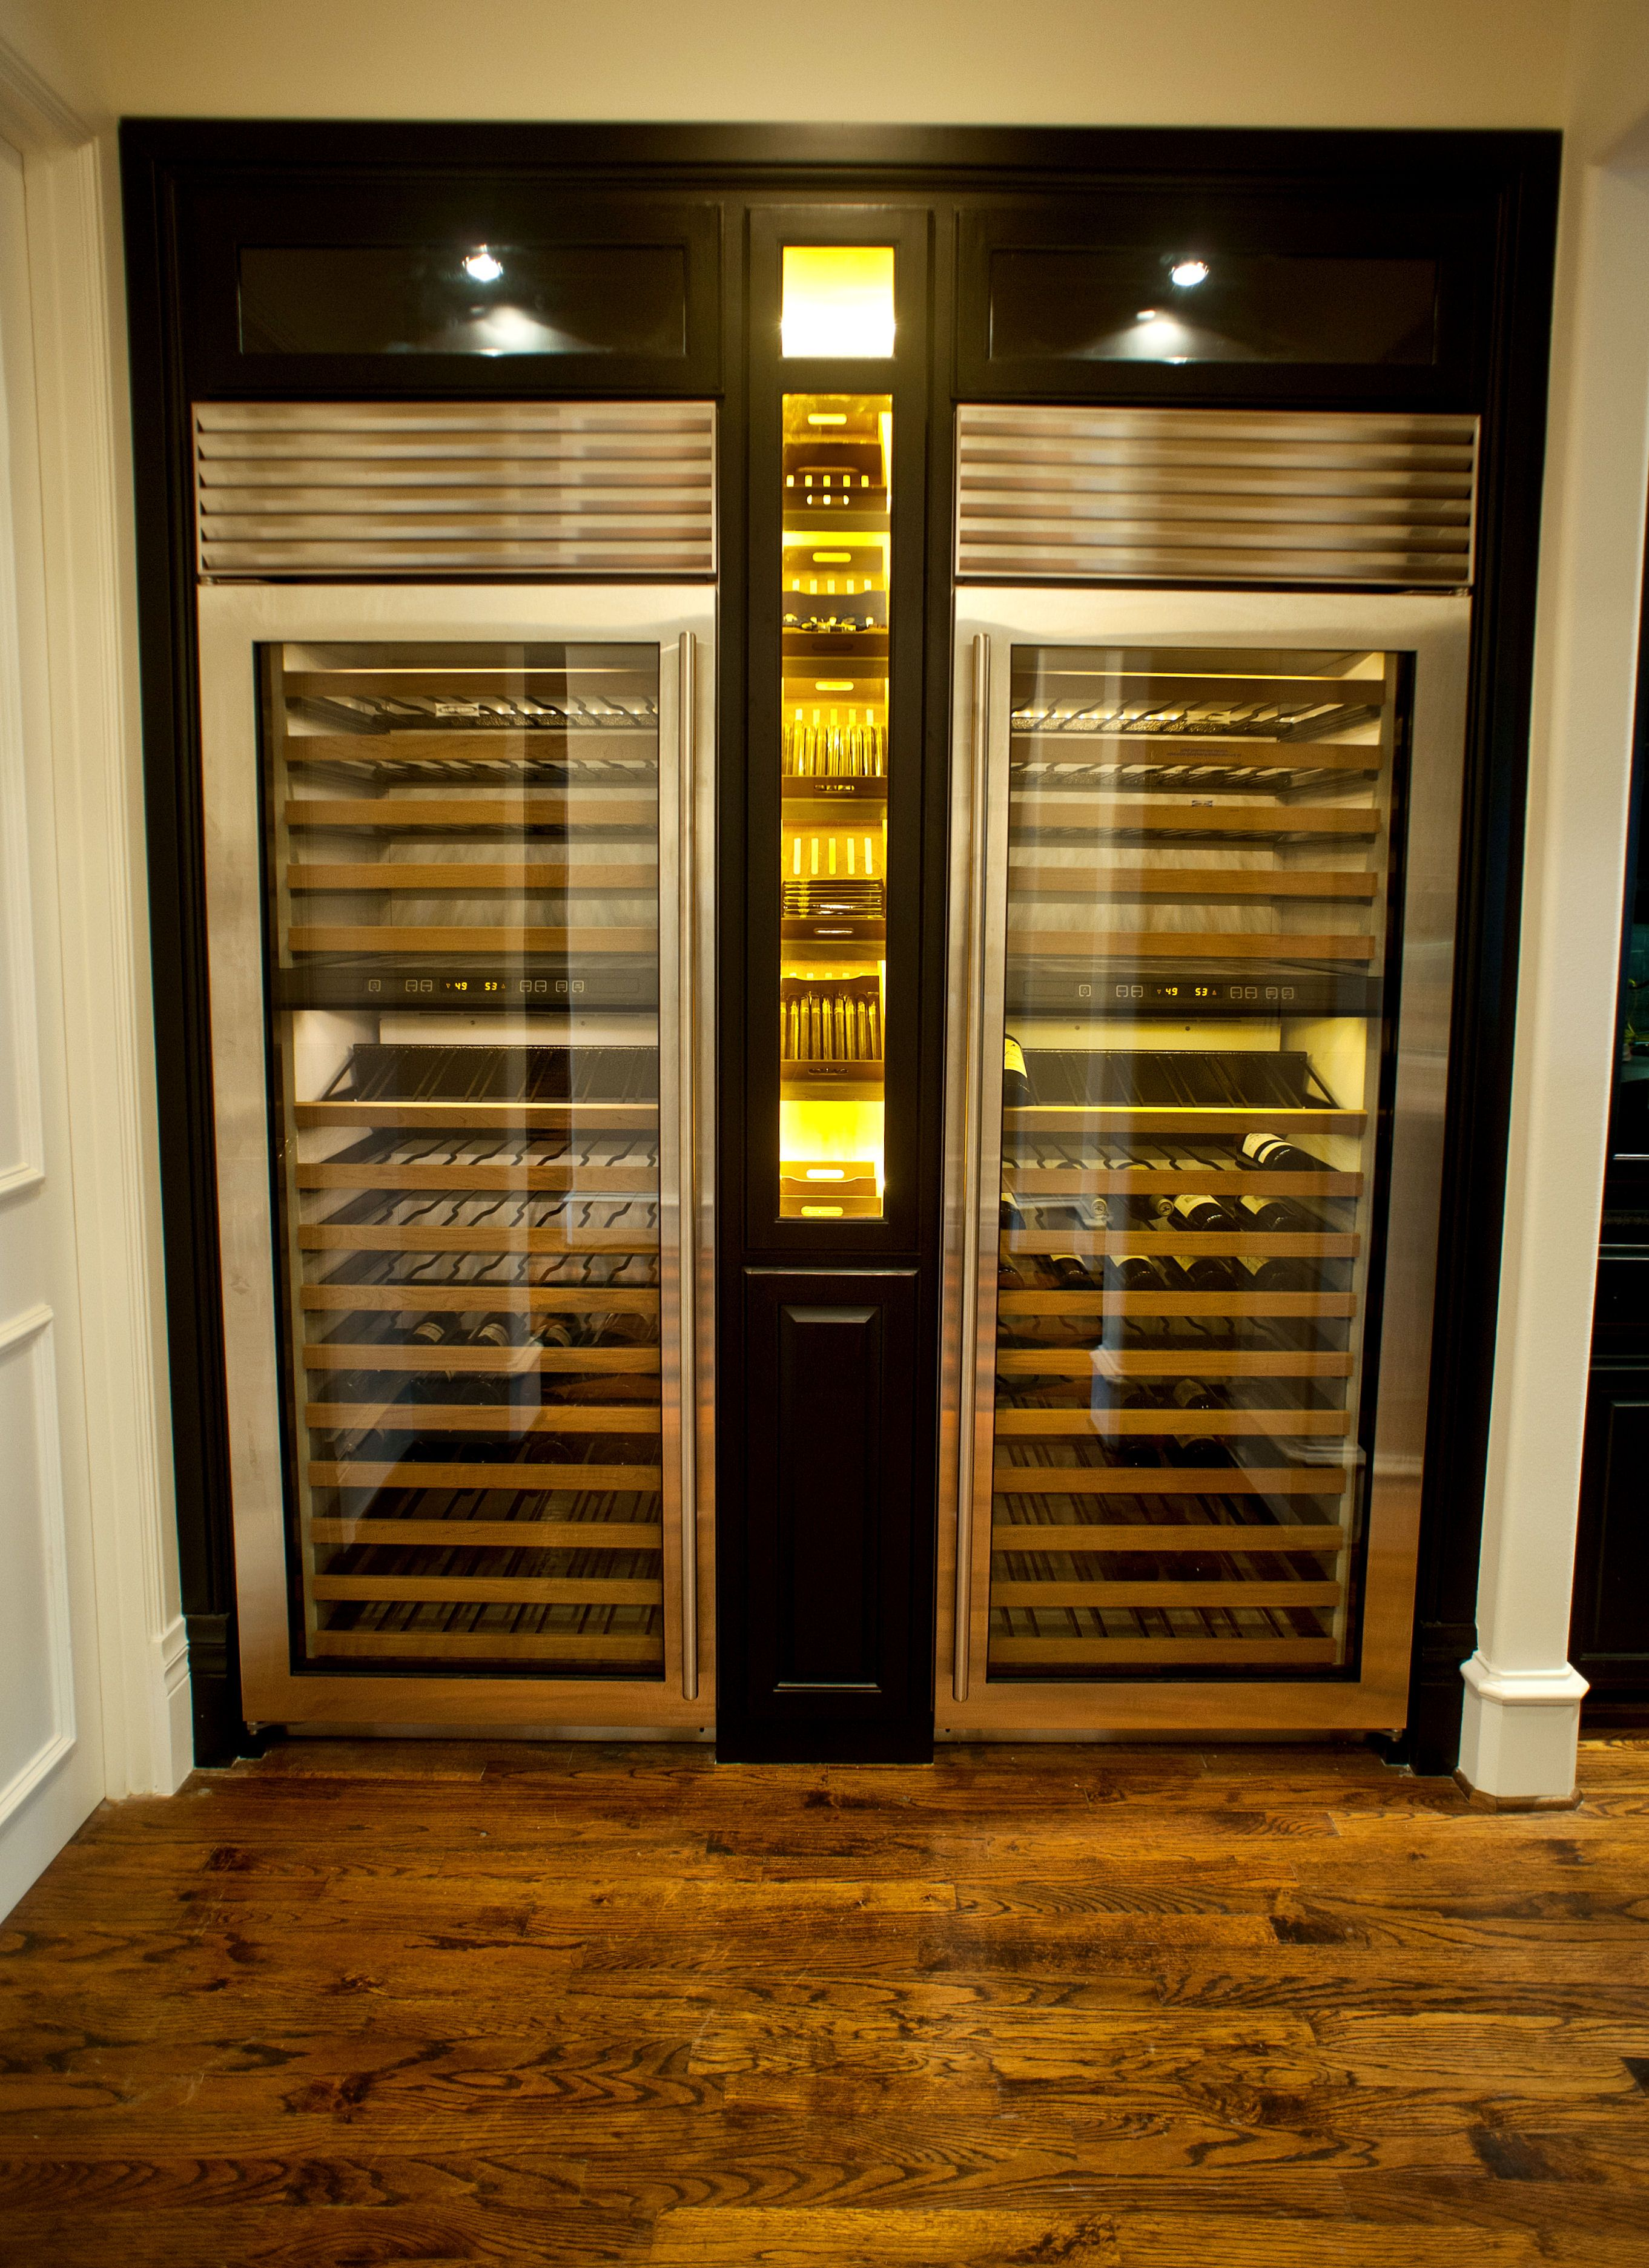 Thermador Wine Columns With Custom Cigar Humidor Adorned By LED Lighting.